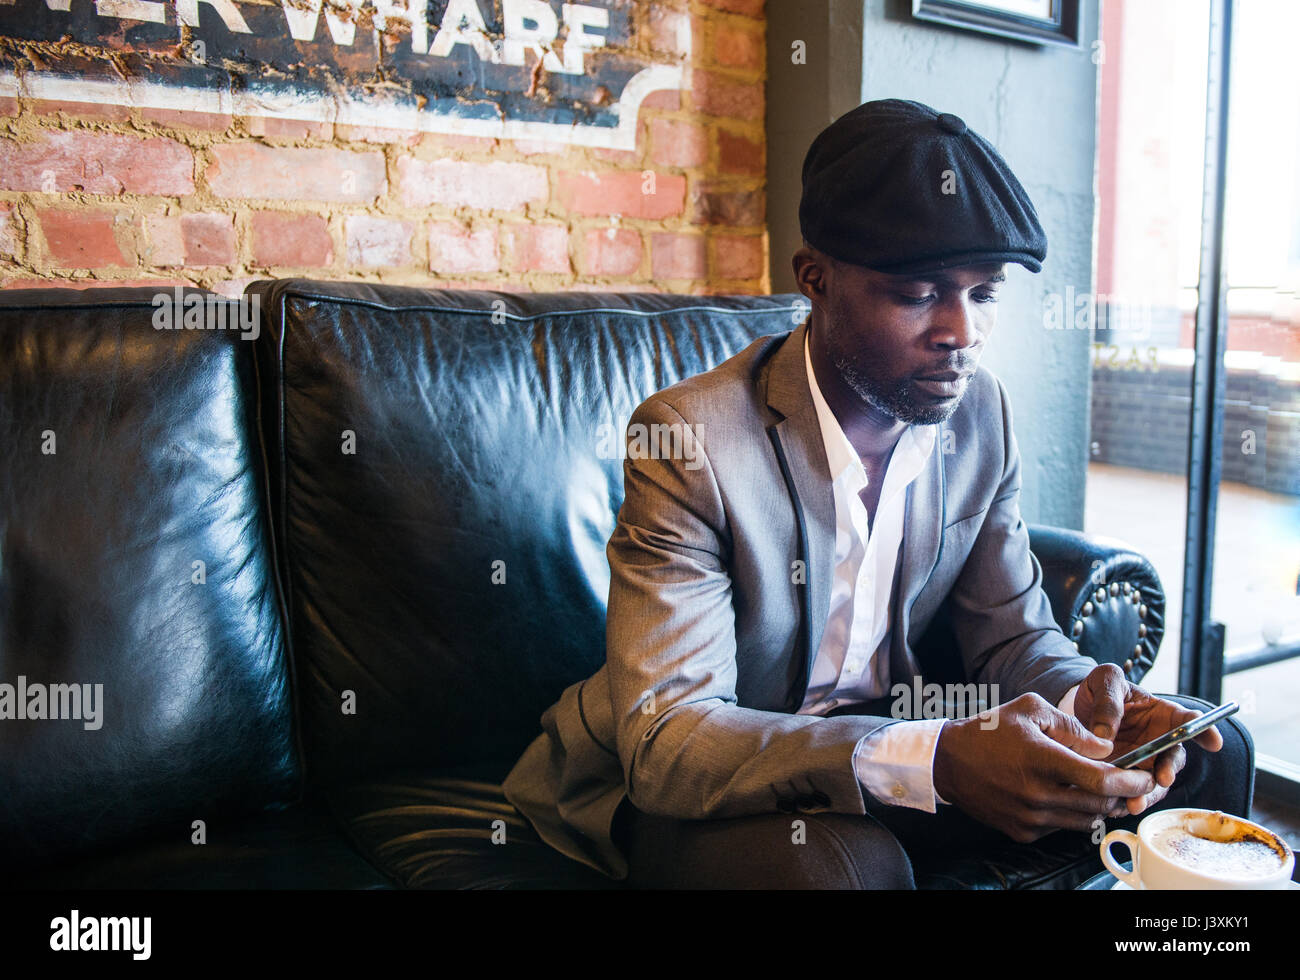 Businessman texting on sofa in cafe, London, UK - Stock Image